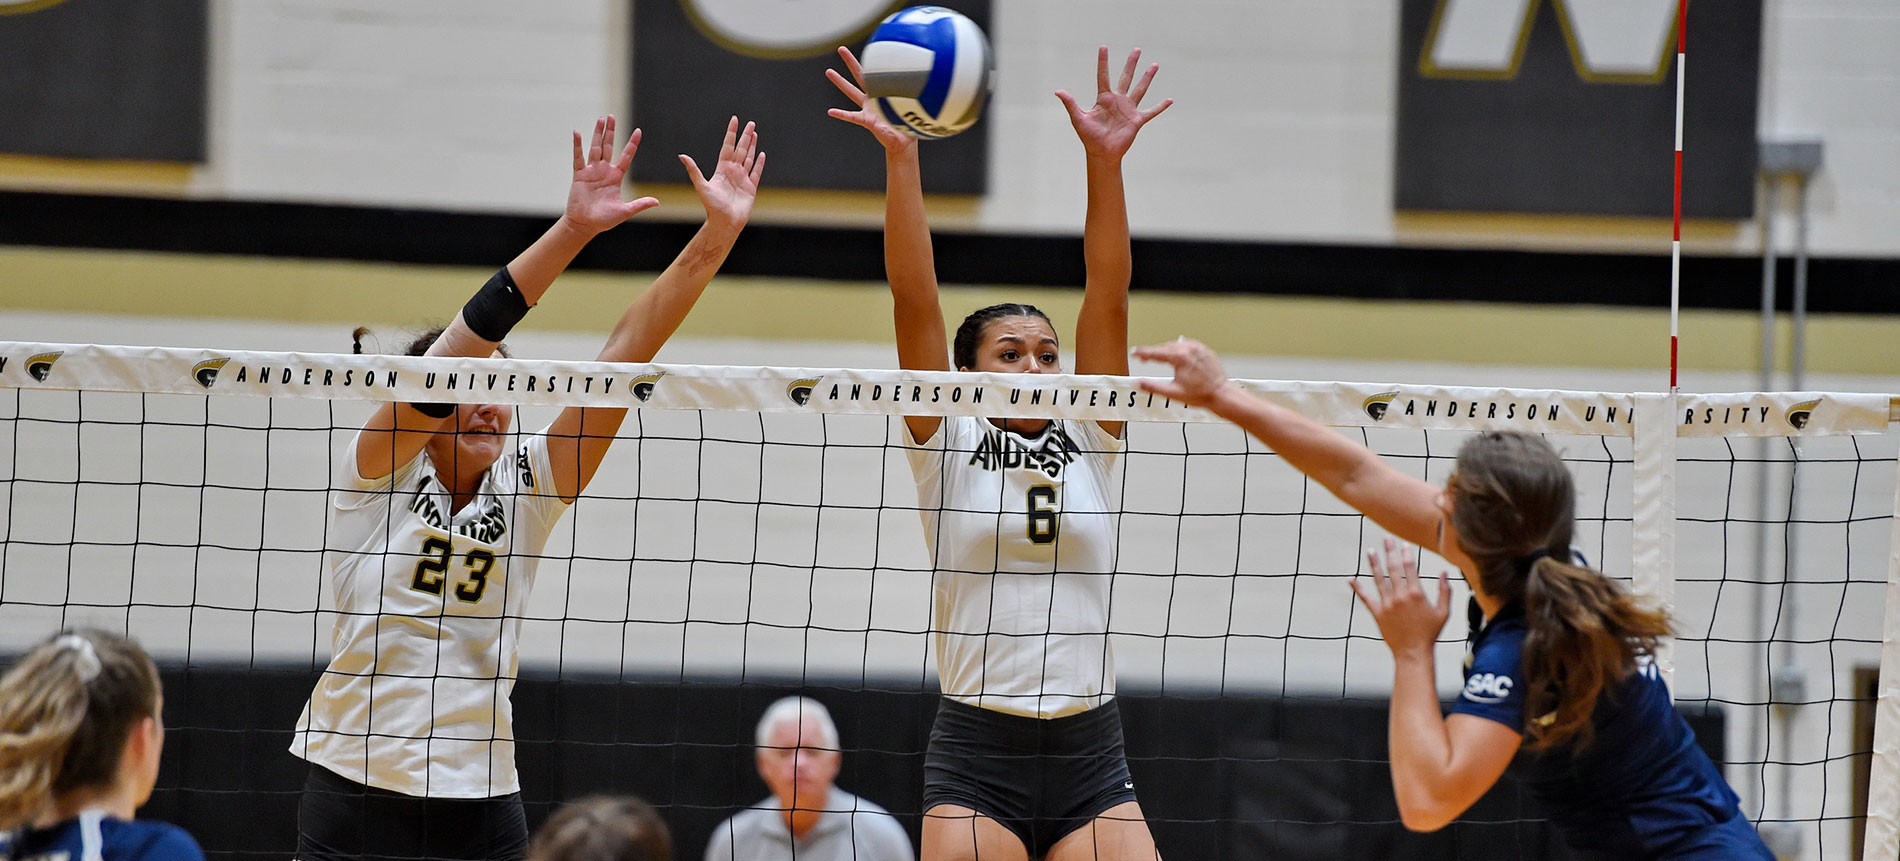 Trojans Open Home Slate by Sweeping Coker and Erskine